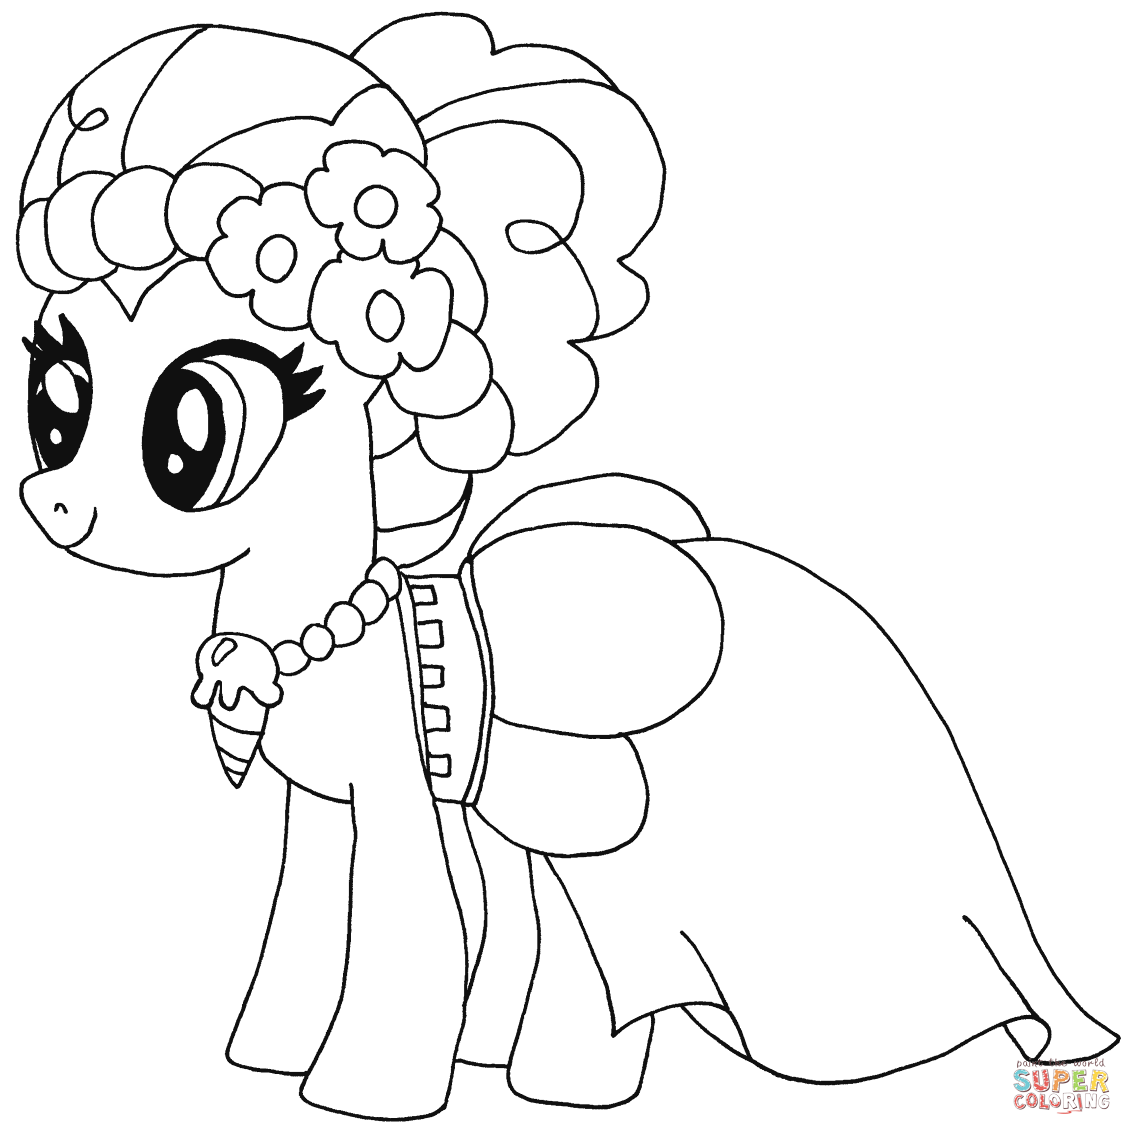 pinky pie coloring pages pinkie pie from my little pony coloring page my little pie coloring pinky pages